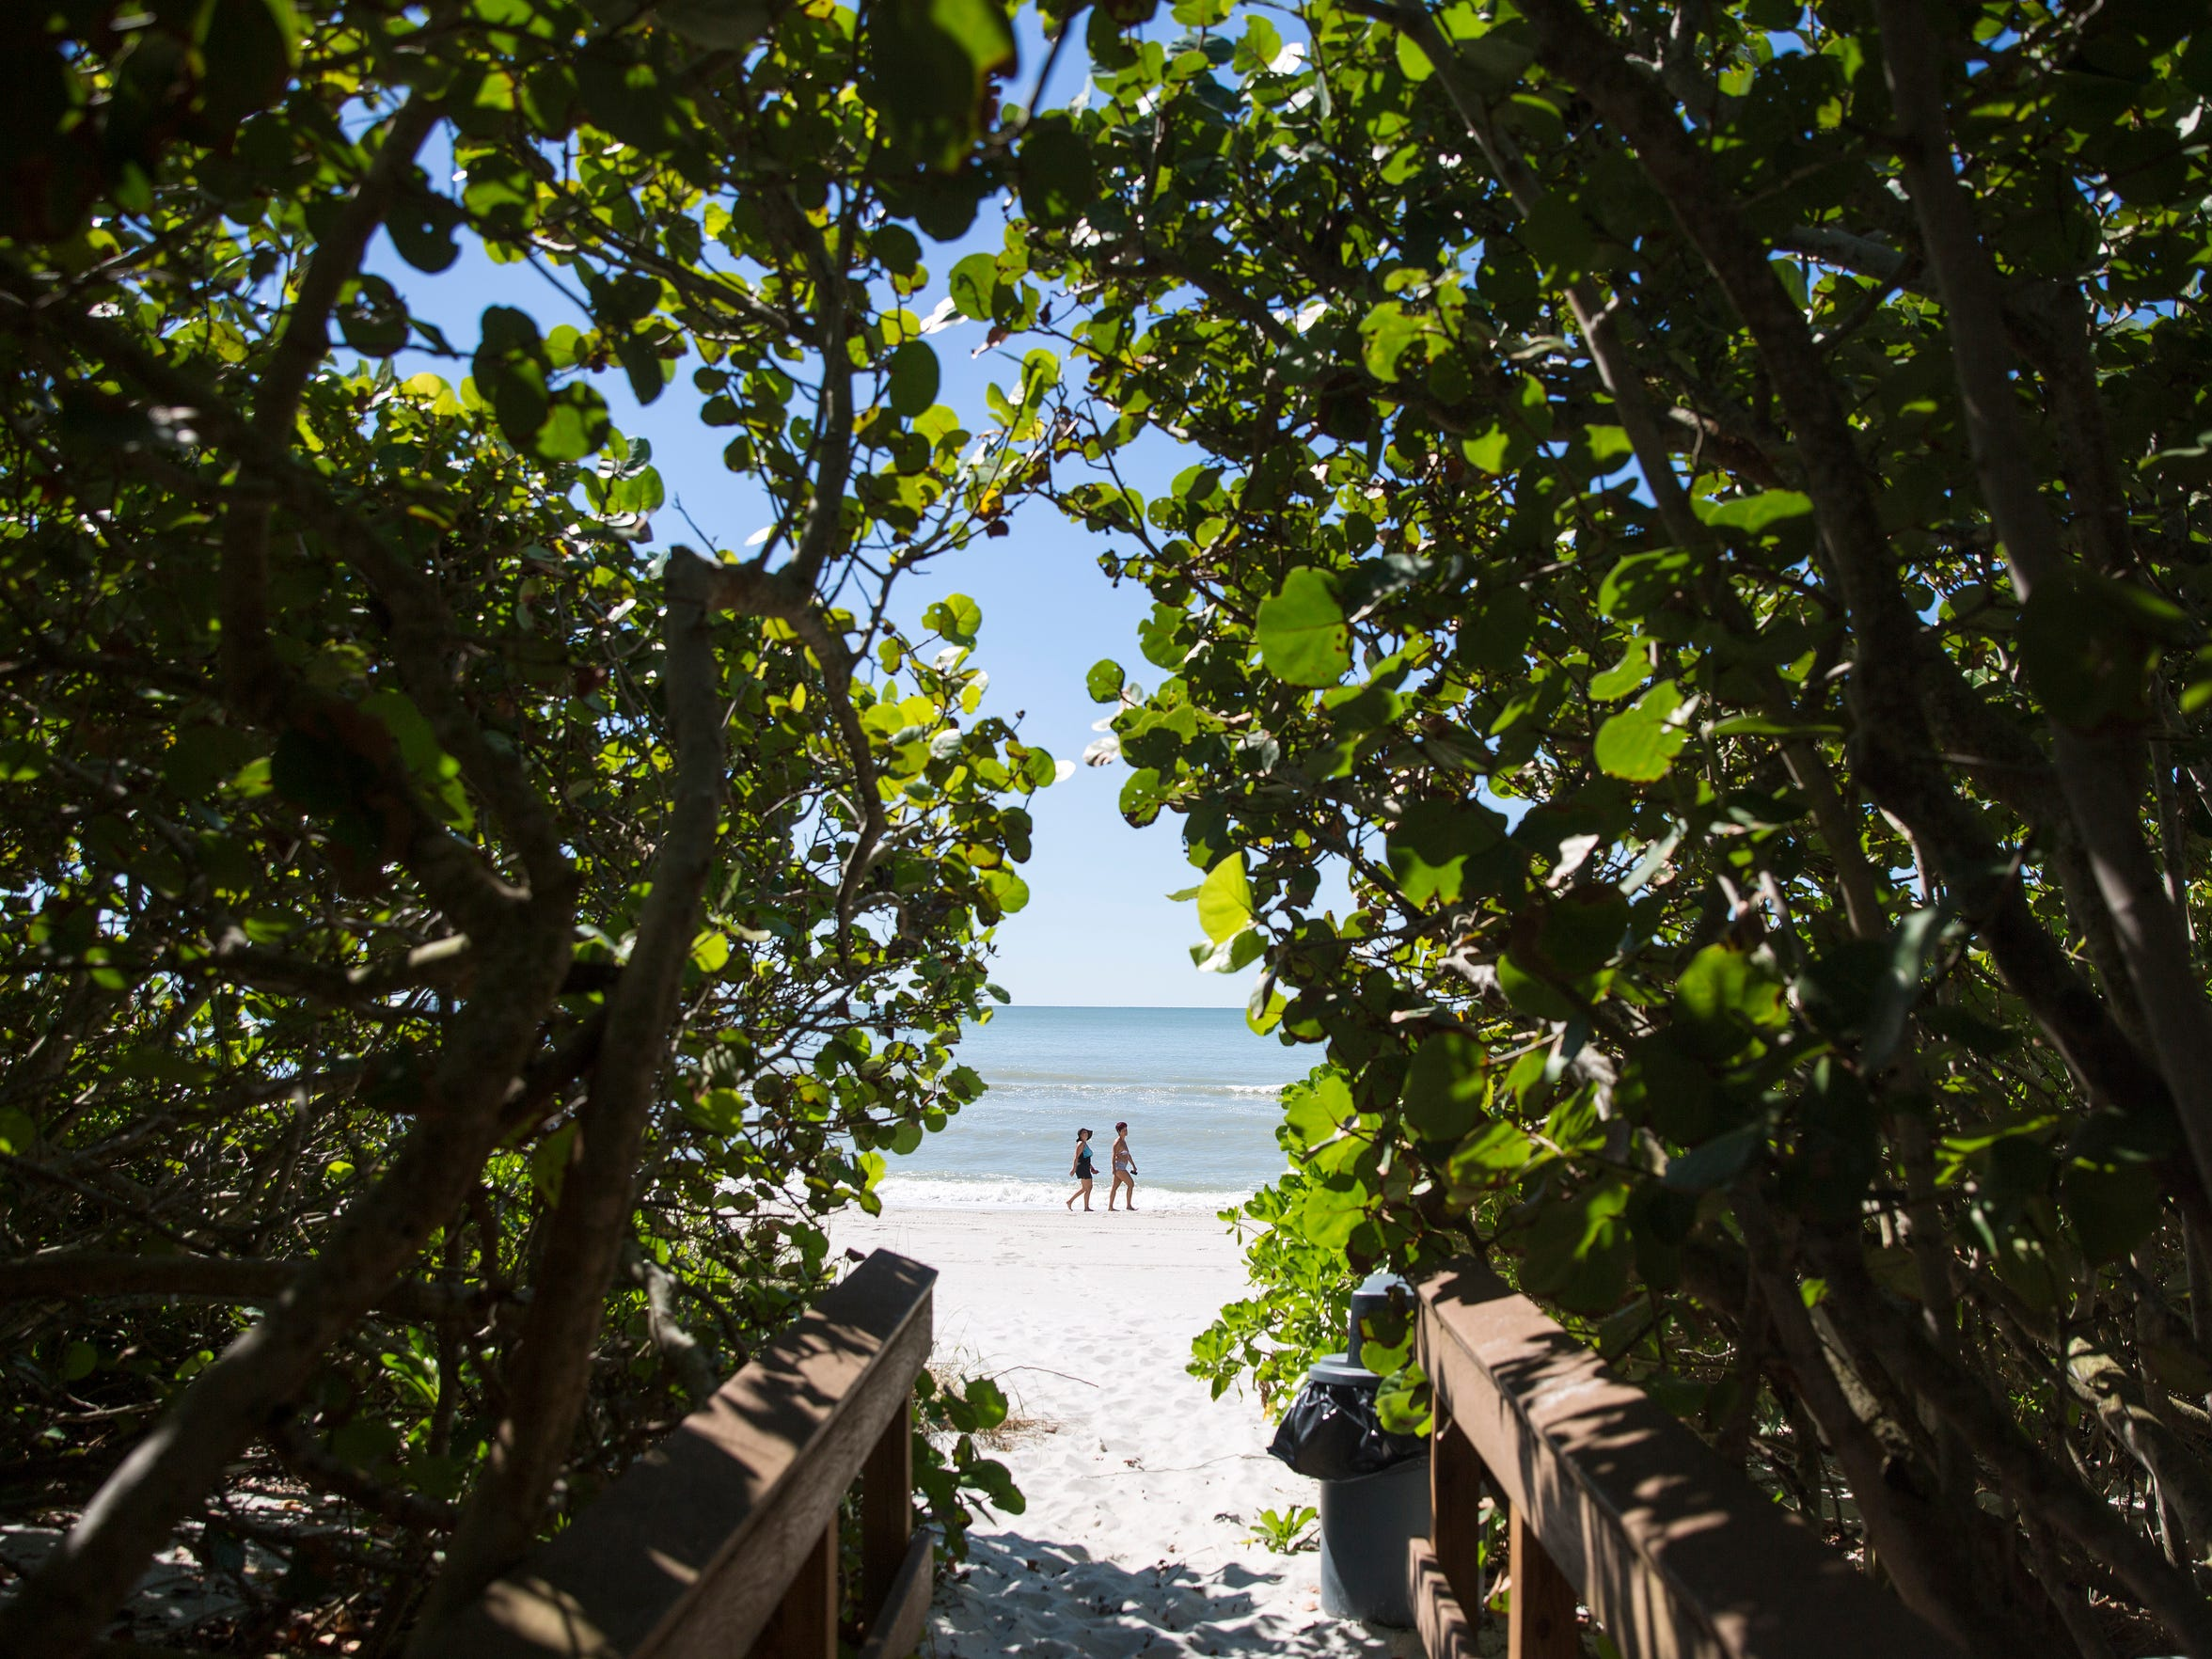 Beachgoers enjoy the private stretch of beachfront for residents of the Moraya Bay Beach Tower and Vanderbilt Gulfside II Condo, which is next to the public Bluebill Beach Access point in Naples, as seen on Thursday, Oct. 26, 2017.